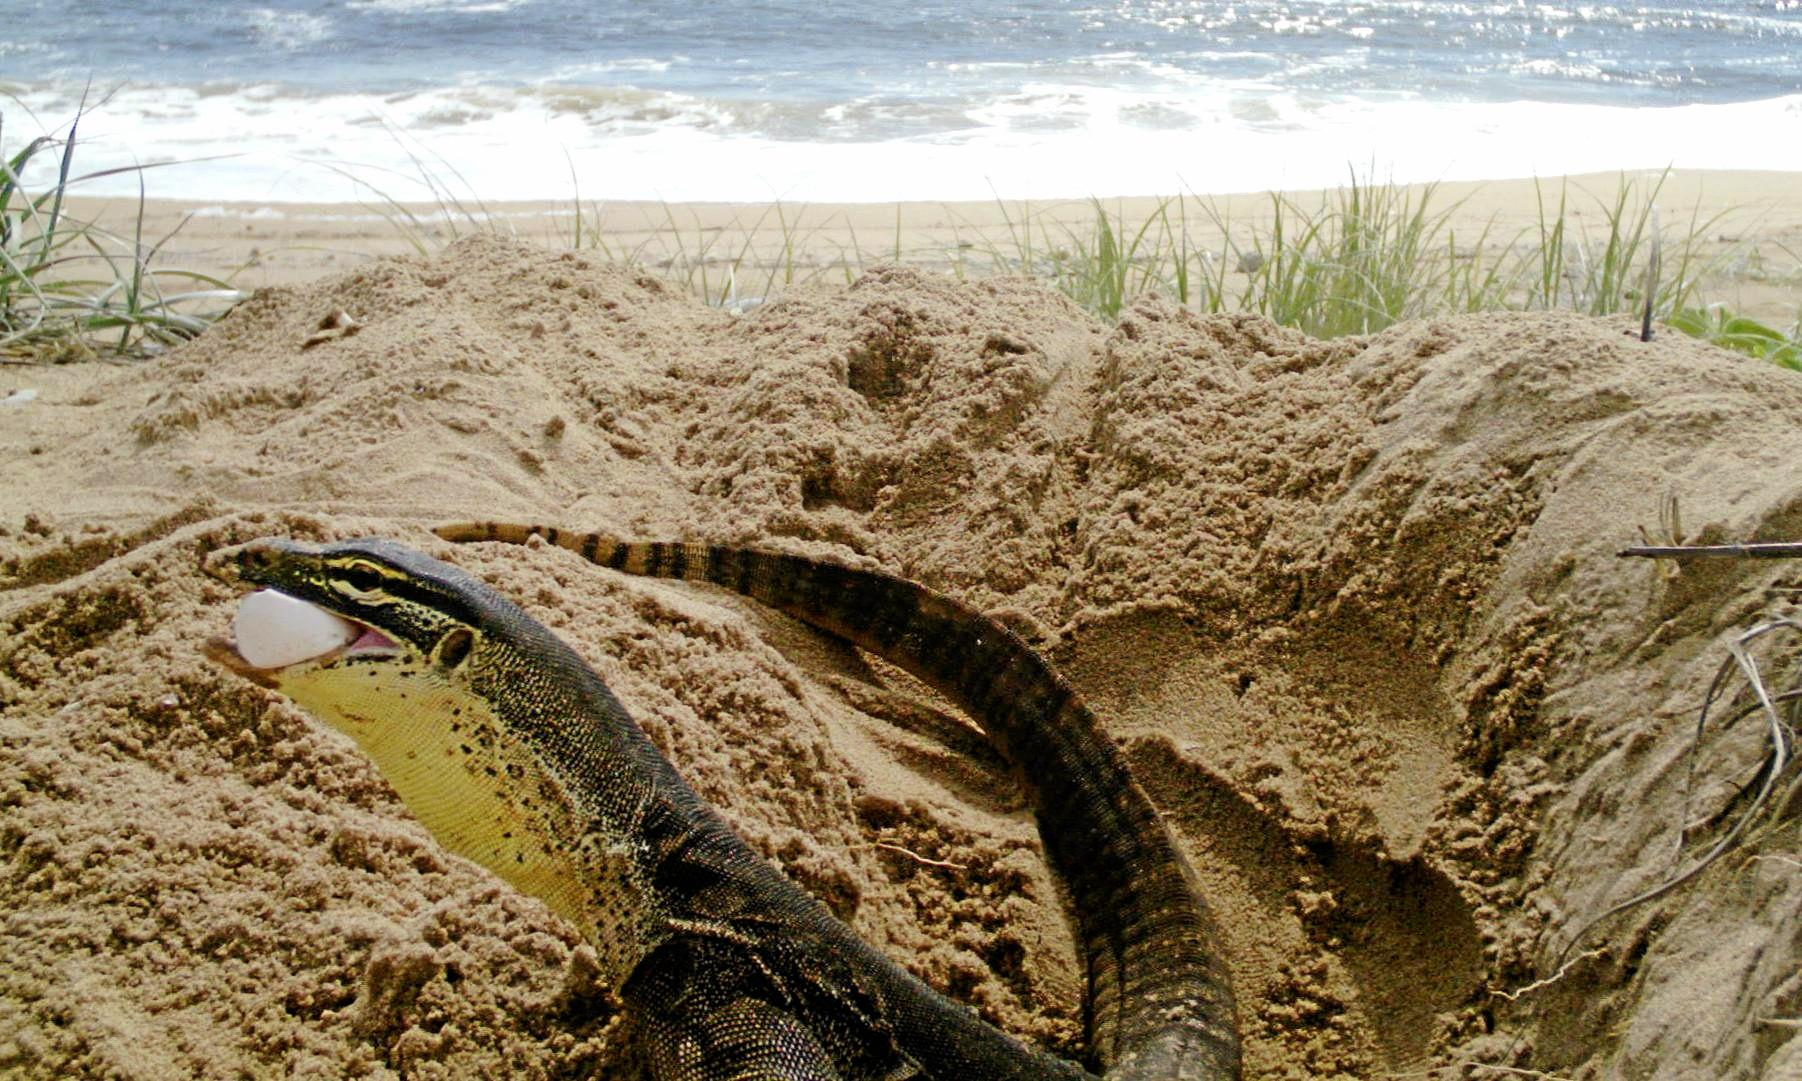 PREDATORS: A goanna caught on a sensor camera eating a loggerhead turtle egg at Wreck Rock beach, south of Agnes Waters.